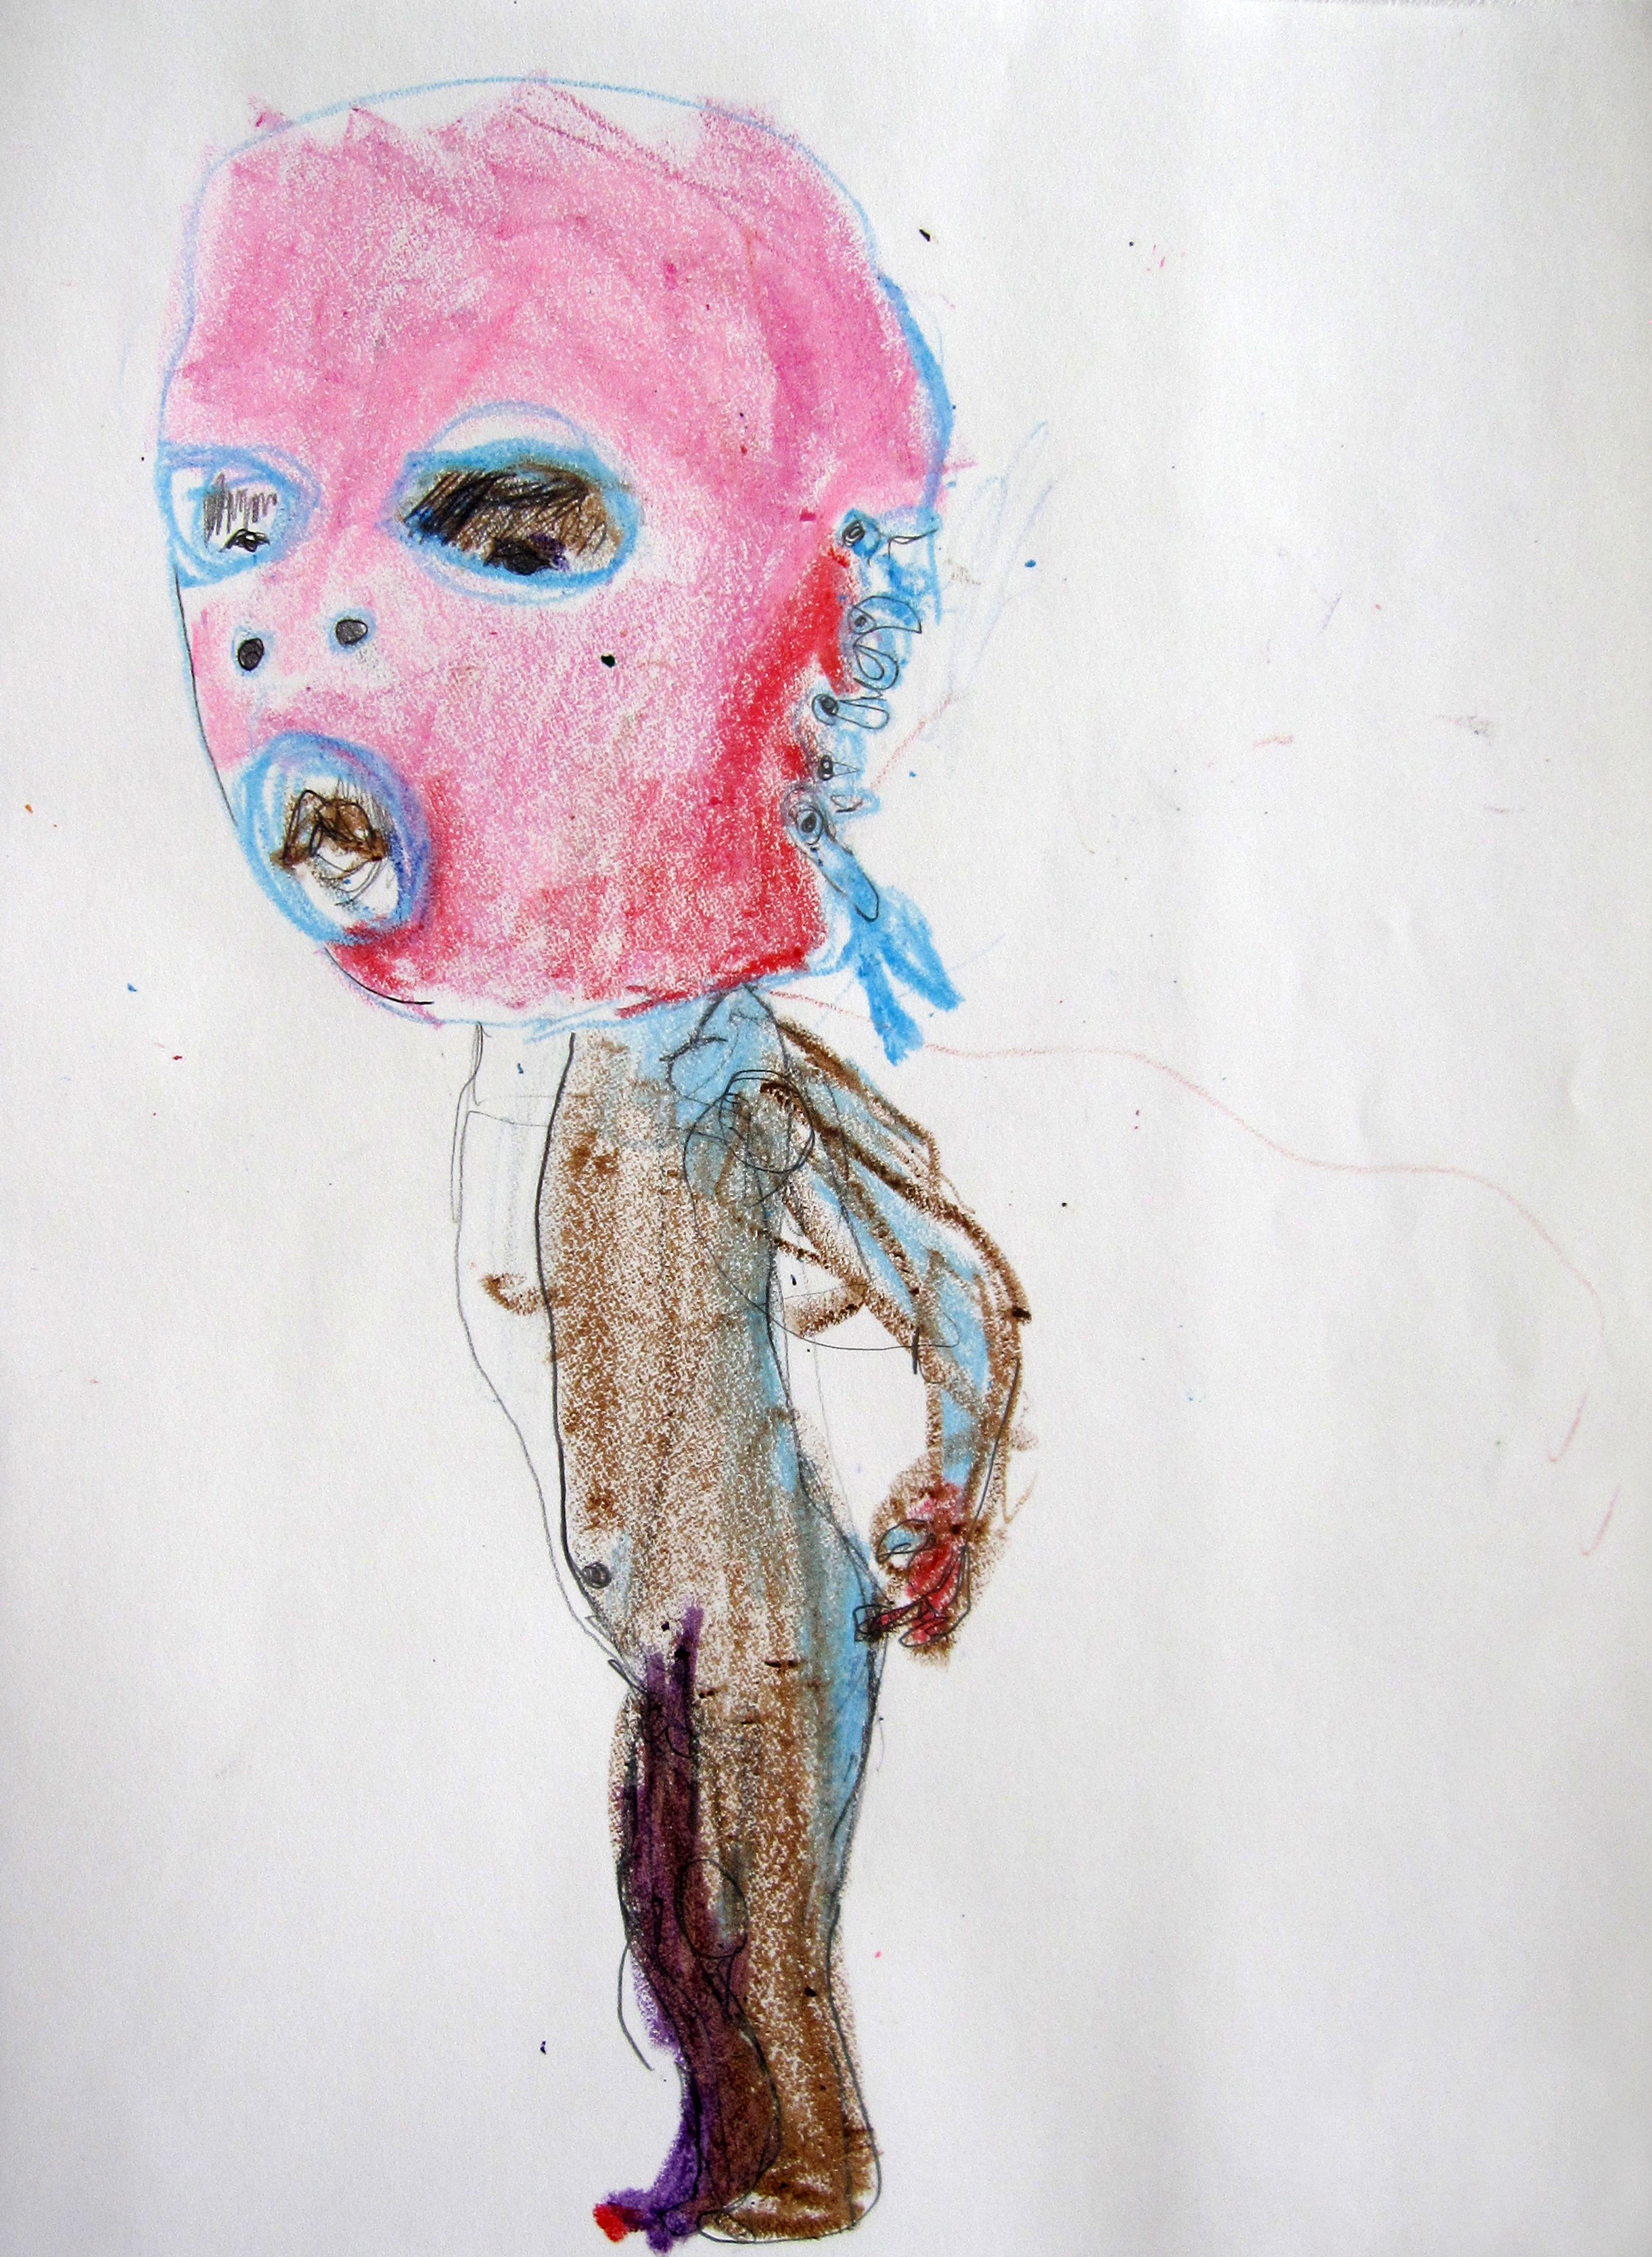 Lucha 1, 2008, Crayon on paper, 14 X11 in.